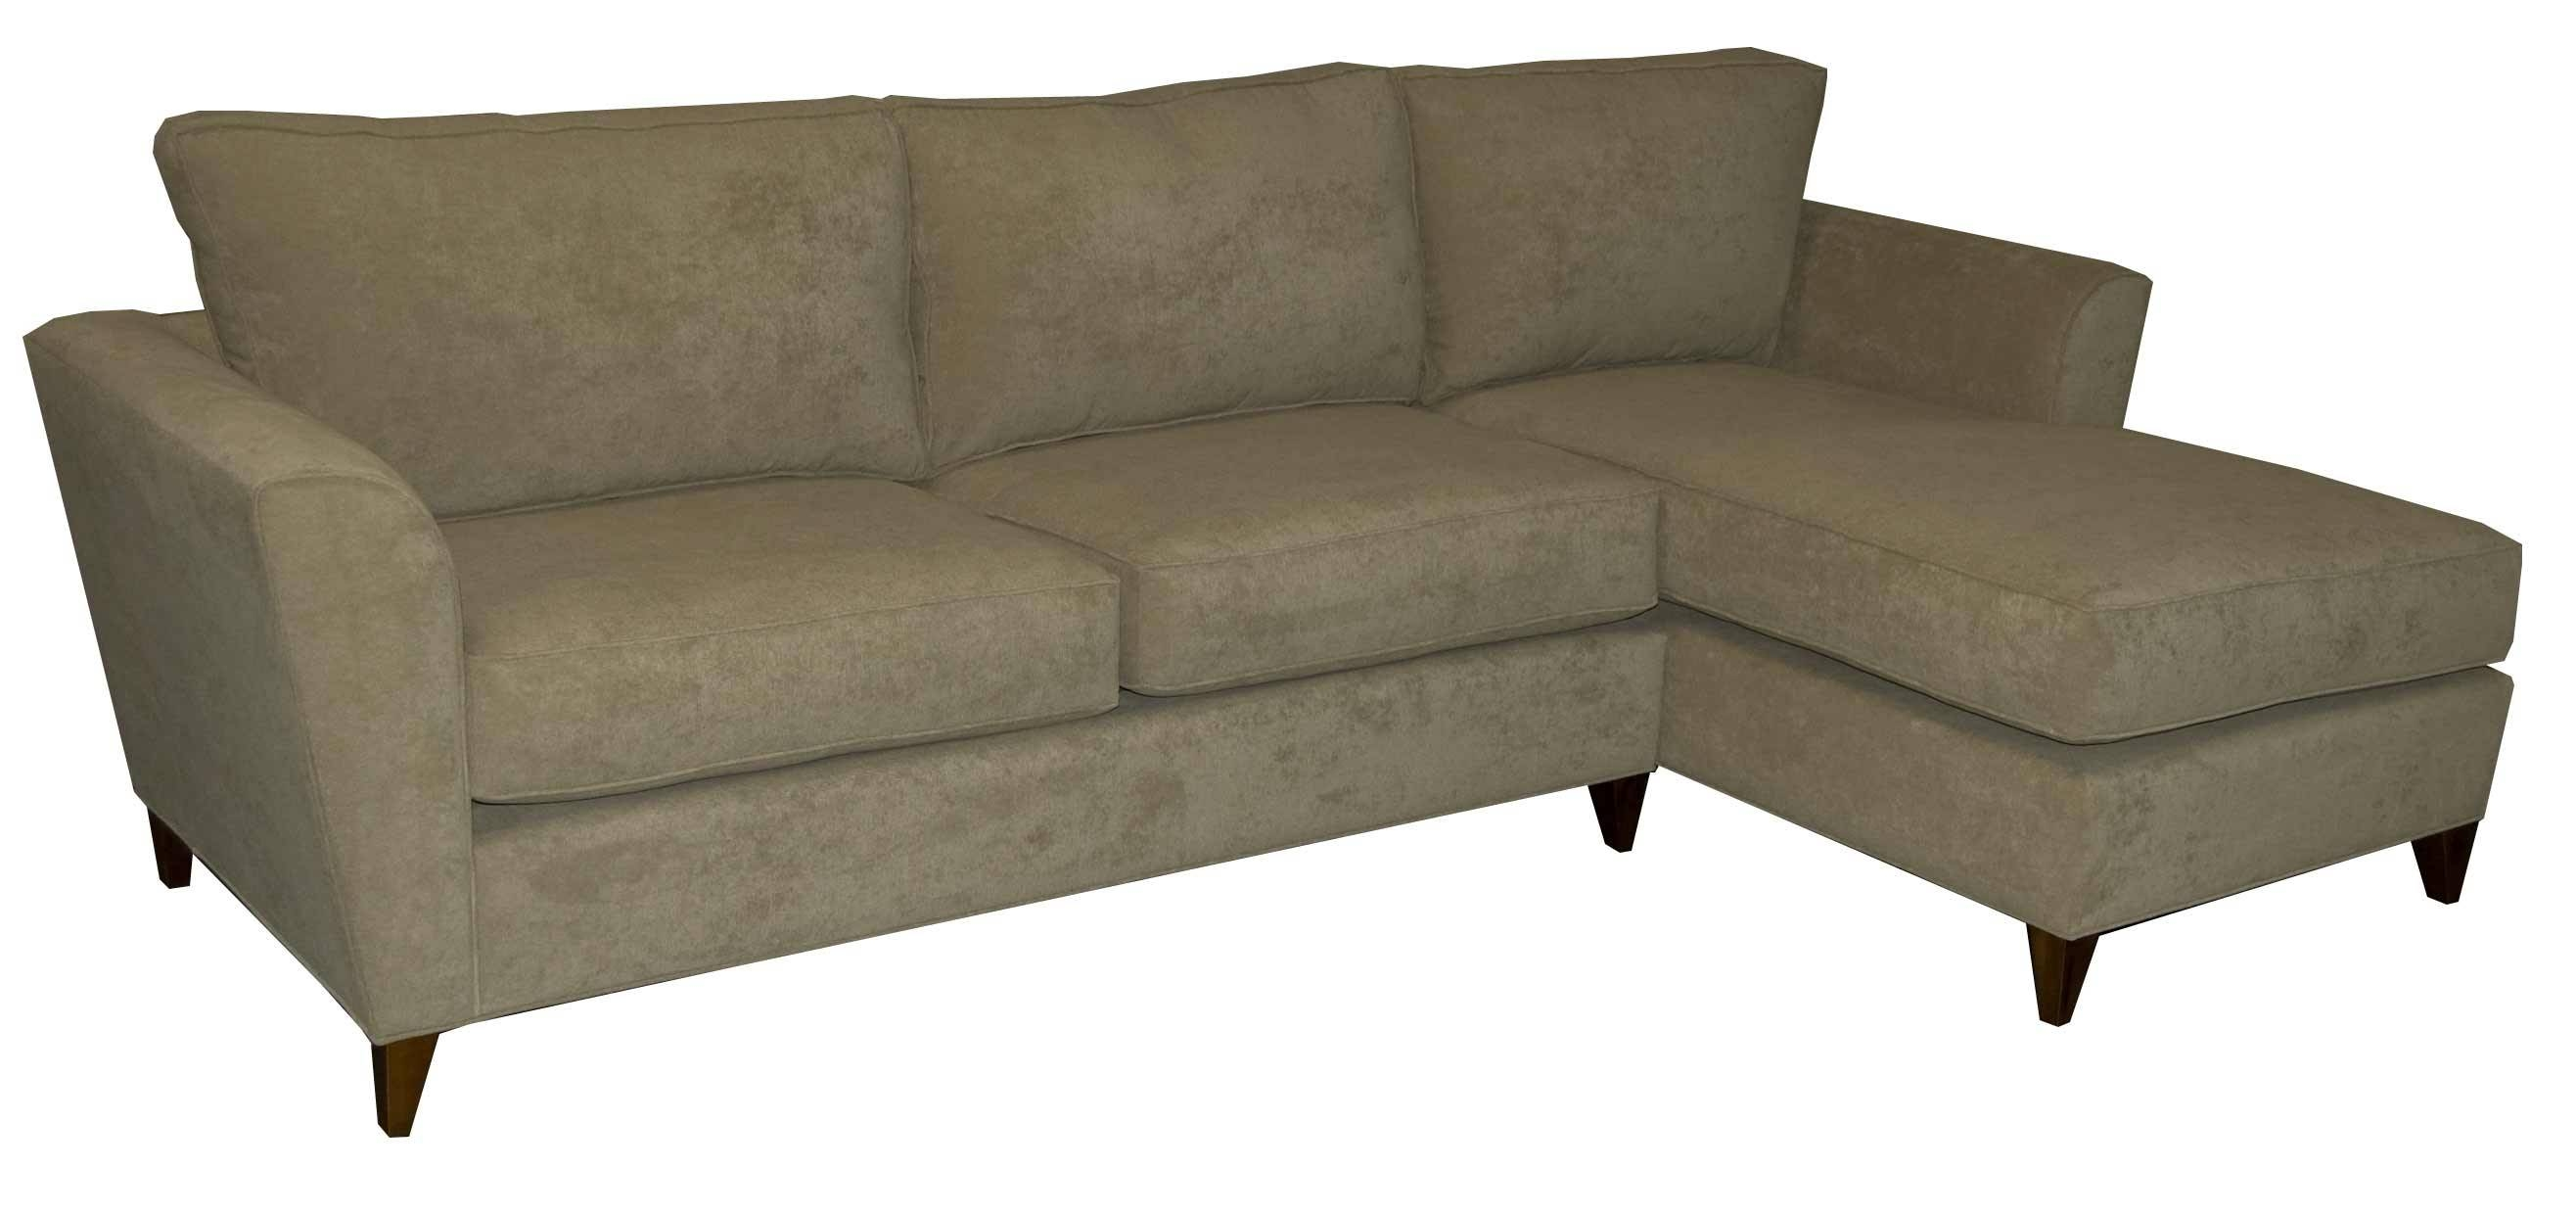 Furniture. Grey Velvet Sectional Sofa With Back Rest And Red throughout Green Sofa Chairs (Image 17 of 30)